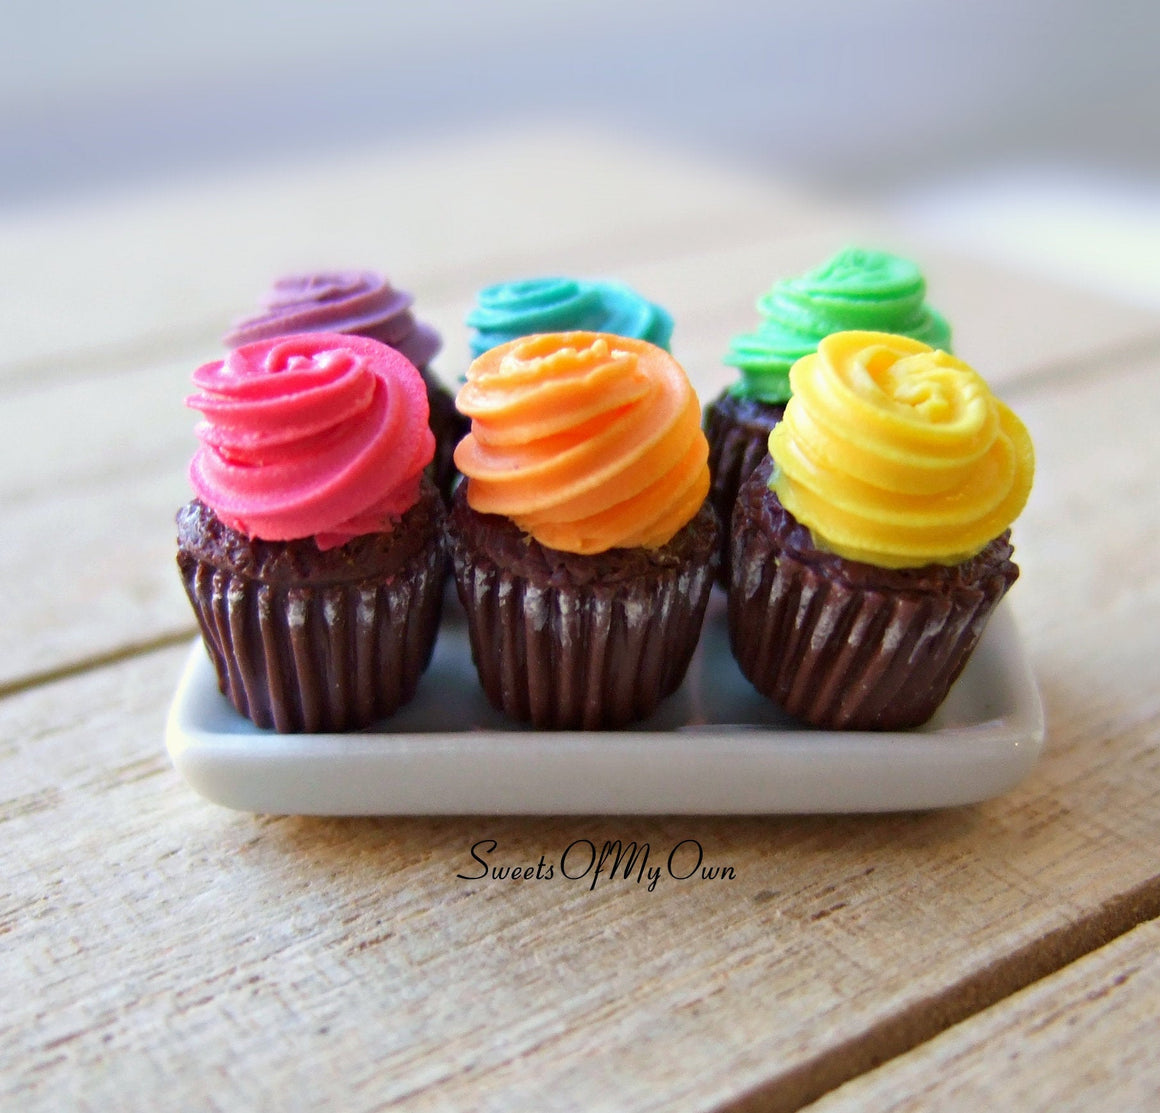 Miniature Chocolate Colourful Cupcakes 1:12 Scale - SweetsOfMyOwn